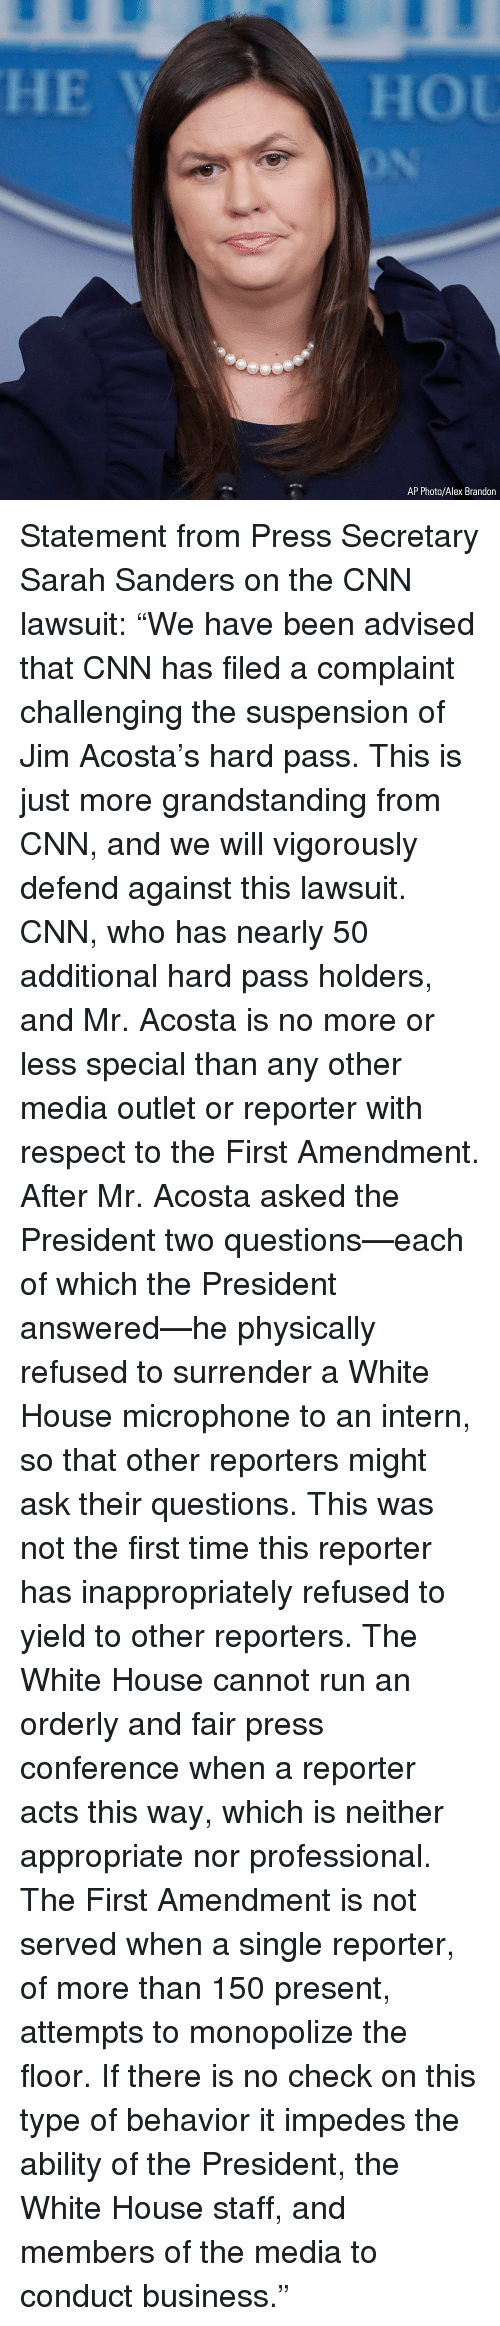 "cnn.com, Memes, and Respect: AP Photo/Alex Brandon Statement from Press Secretary Sarah Sanders on the CNN lawsuit: ""We have been advised that CNN has filed a complaint challenging the suspension of Jim Acosta's hard pass. This is just more grandstanding from CNN, and we will vigorously defend against this lawsuit. CNN, who has nearly 50 additional hard pass holders, and Mr. Acosta is no more or less special than any other media outlet or reporter with respect to the First Amendment. After Mr. Acosta asked the President two questions—each of which the President answered—he physically refused to surrender a White House microphone to an intern, so that other reporters might ask their questions. This was not the first time this reporter has inappropriately refused to yield to other reporters. The White House cannot run an orderly and fair press conference when a reporter acts this way, which is neither appropriate nor professional. The First Amendment is not served when a single reporter, of more than 150 present, attempts to monopolize the floor. If there is no check on this type of behavior it impedes the ability of the President, the White House staff, and members of the media to conduct business."""